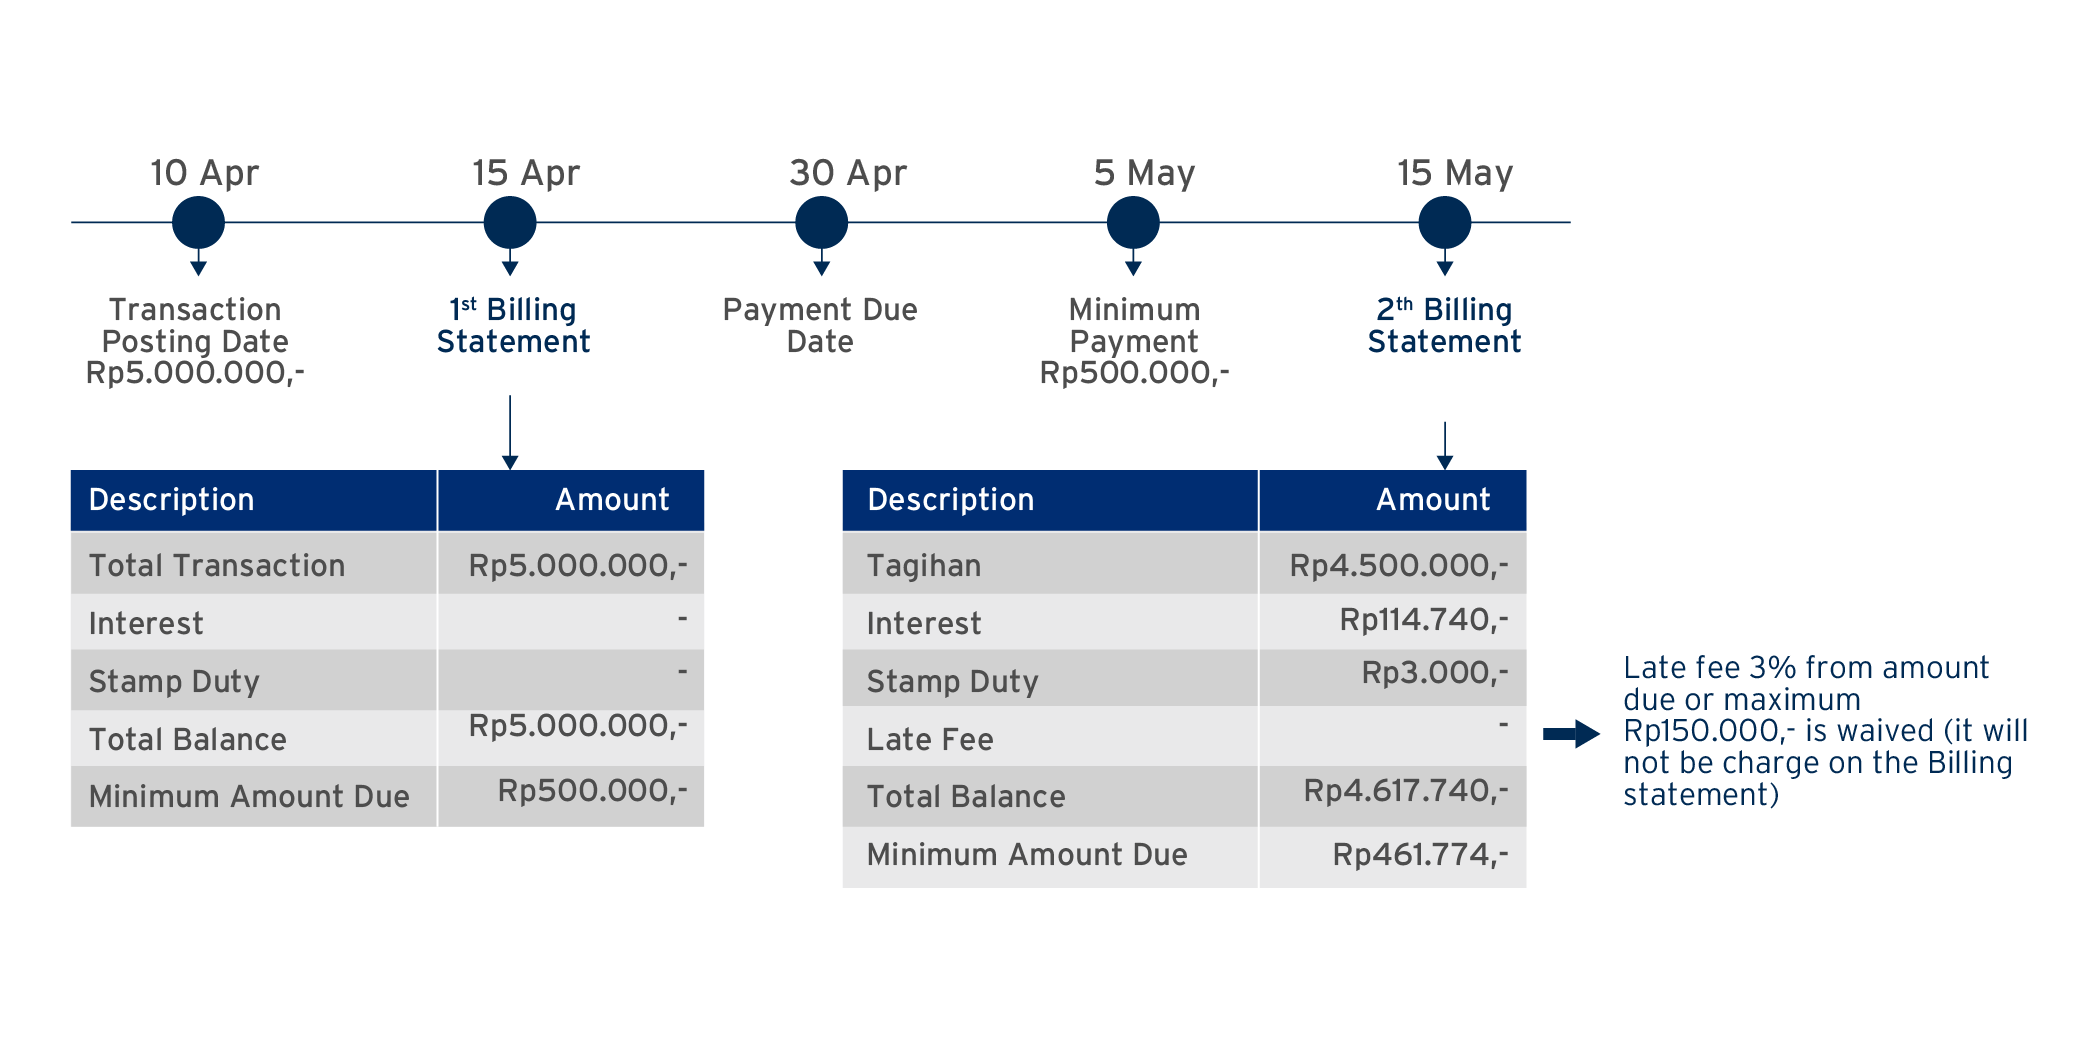 Savings Illustration from Late Fees